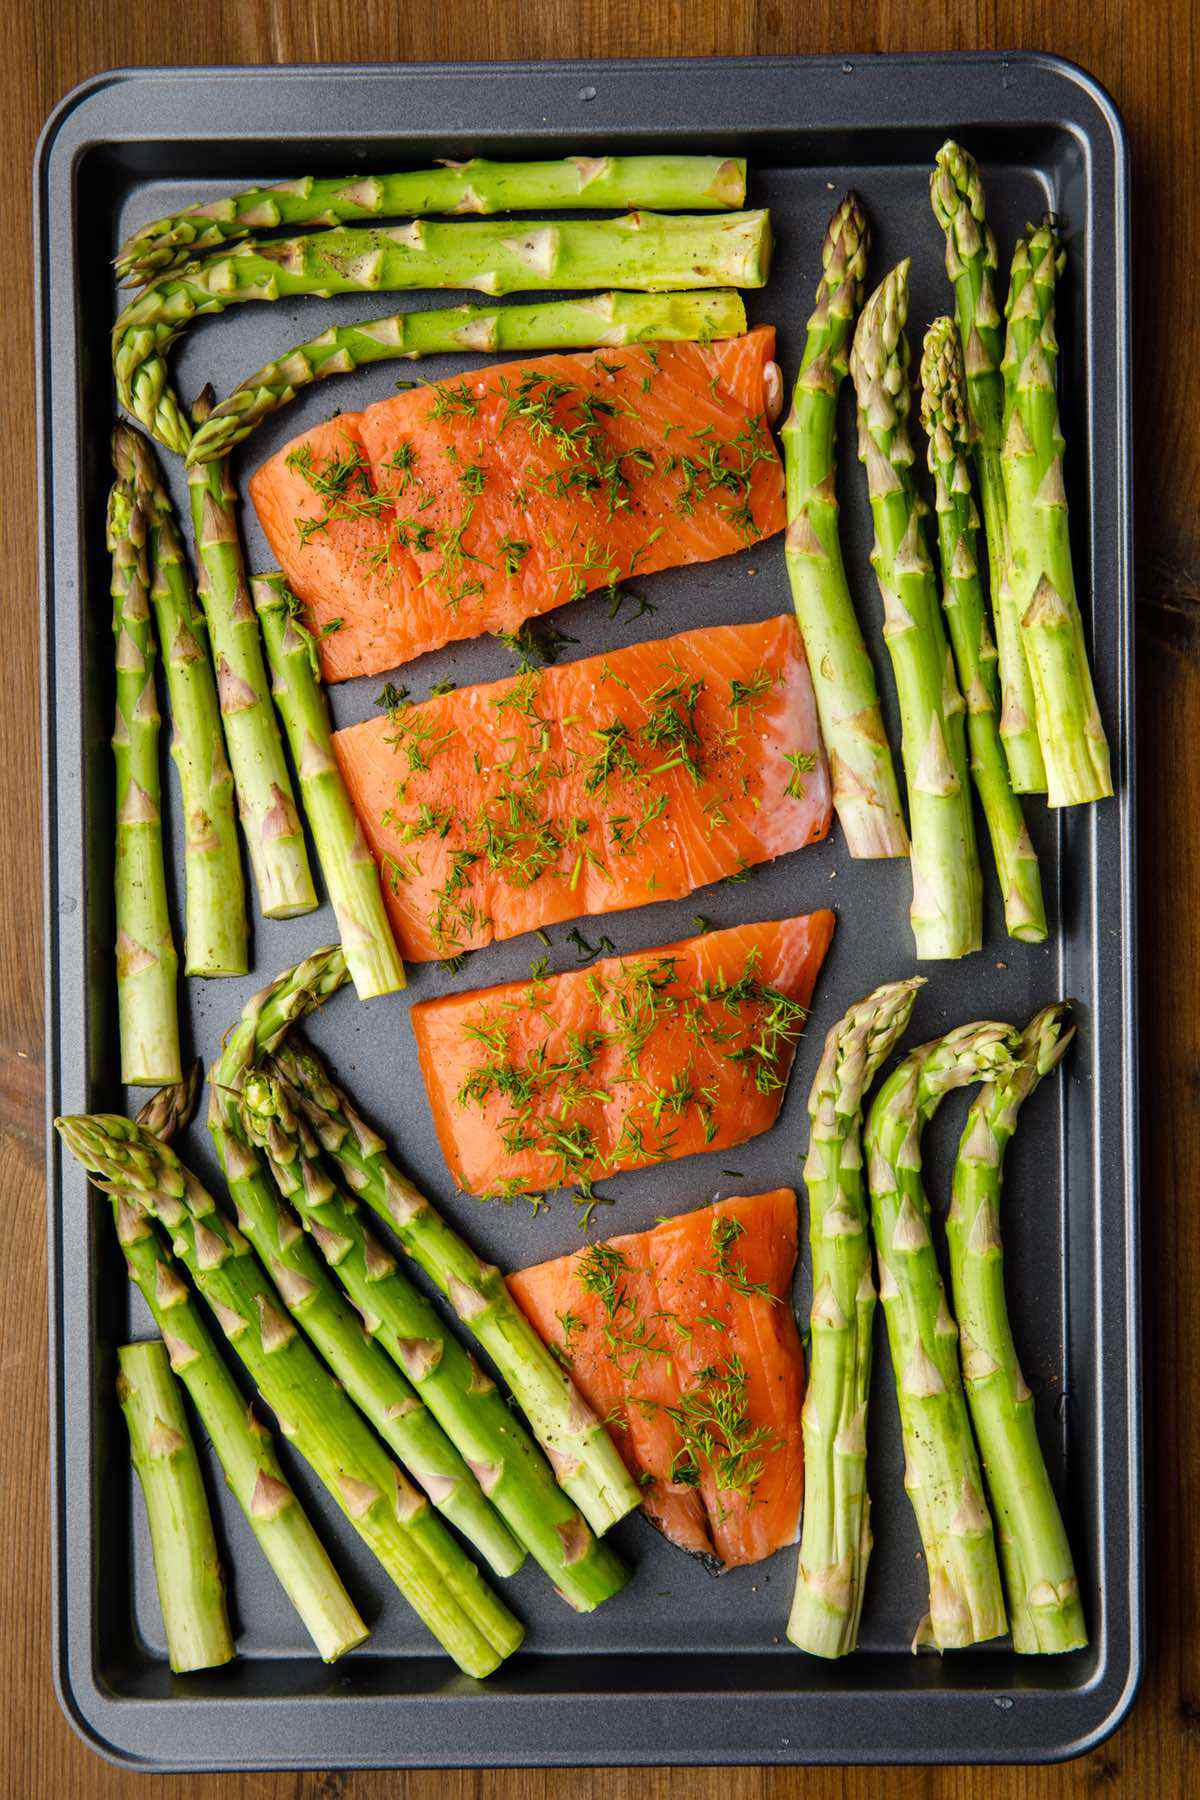 getting salmon and asparagus ready